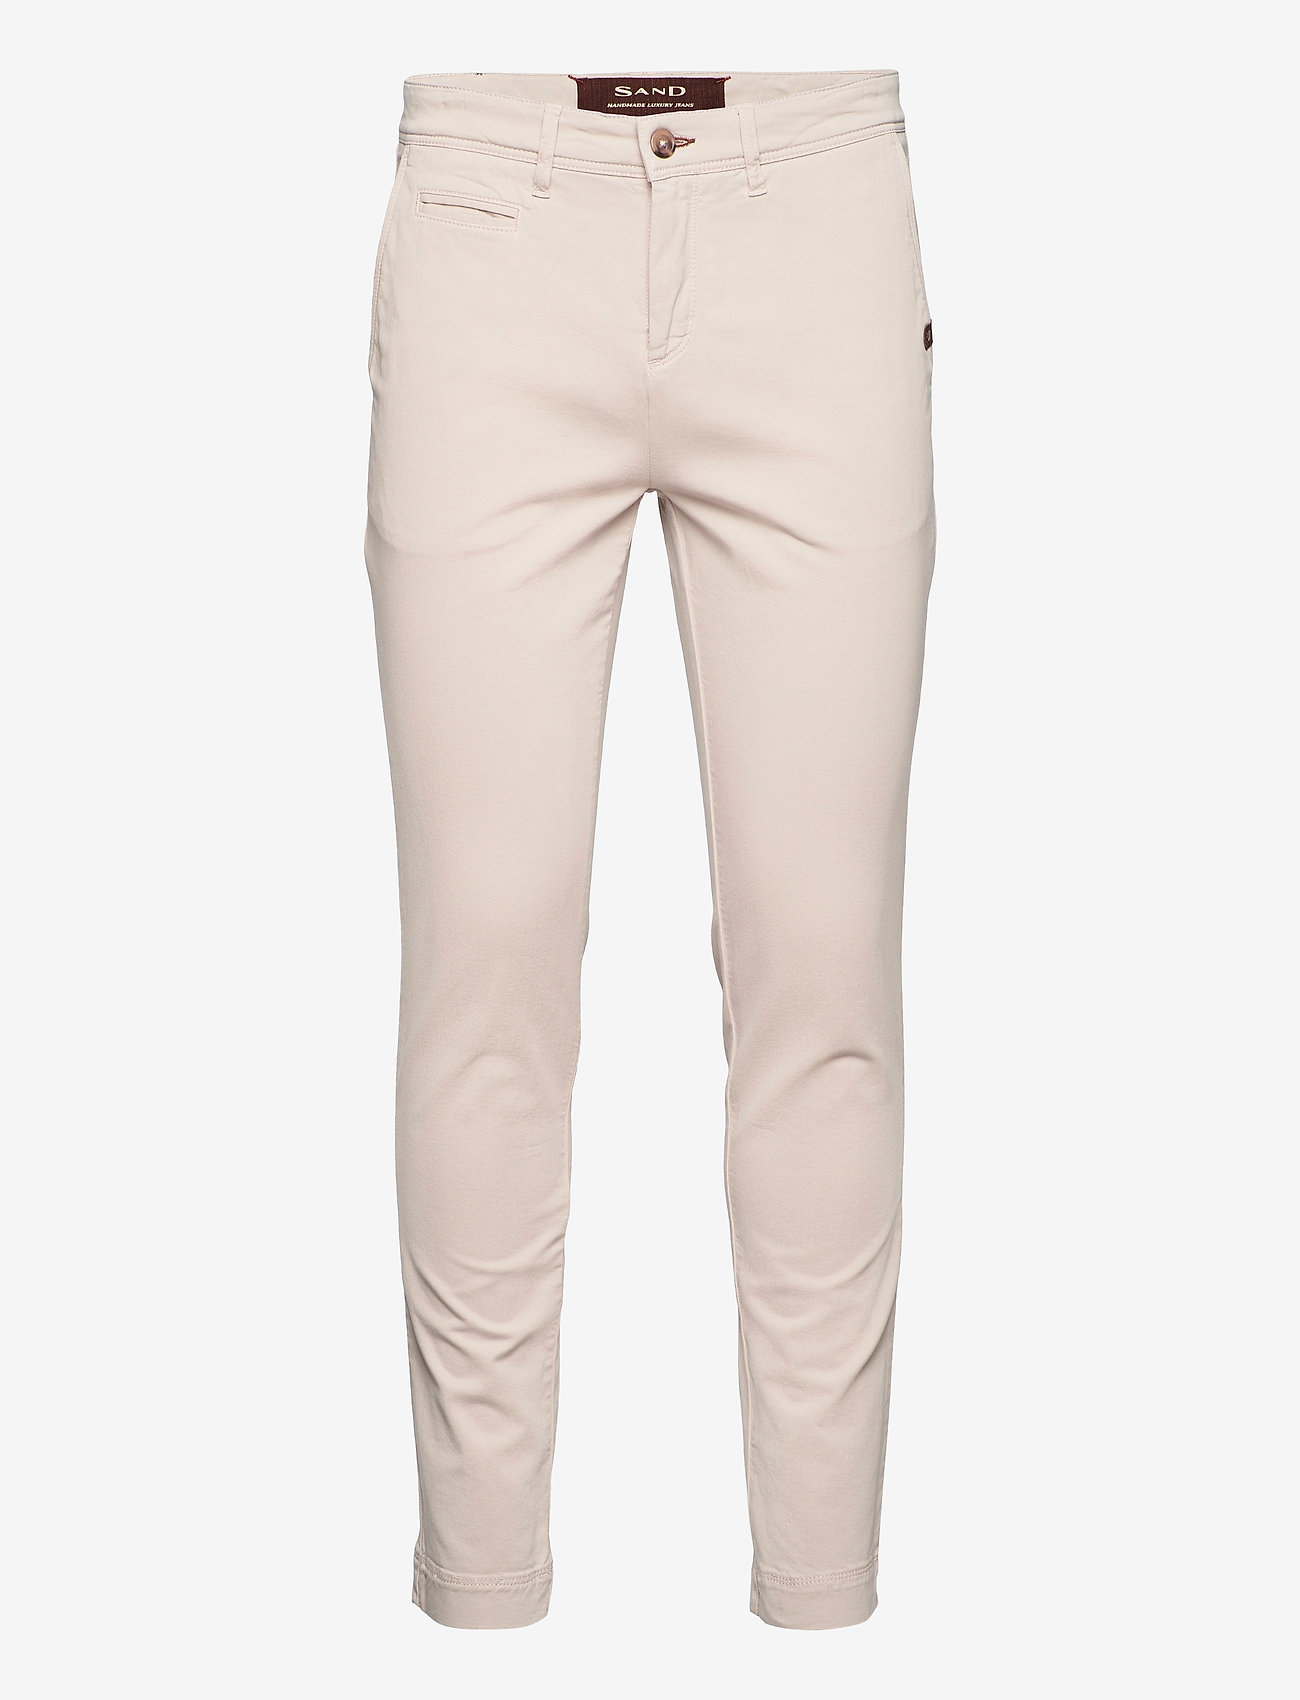 SAND - Cashmere Touch - Dolan Slim - regular jeans - light camel - 0